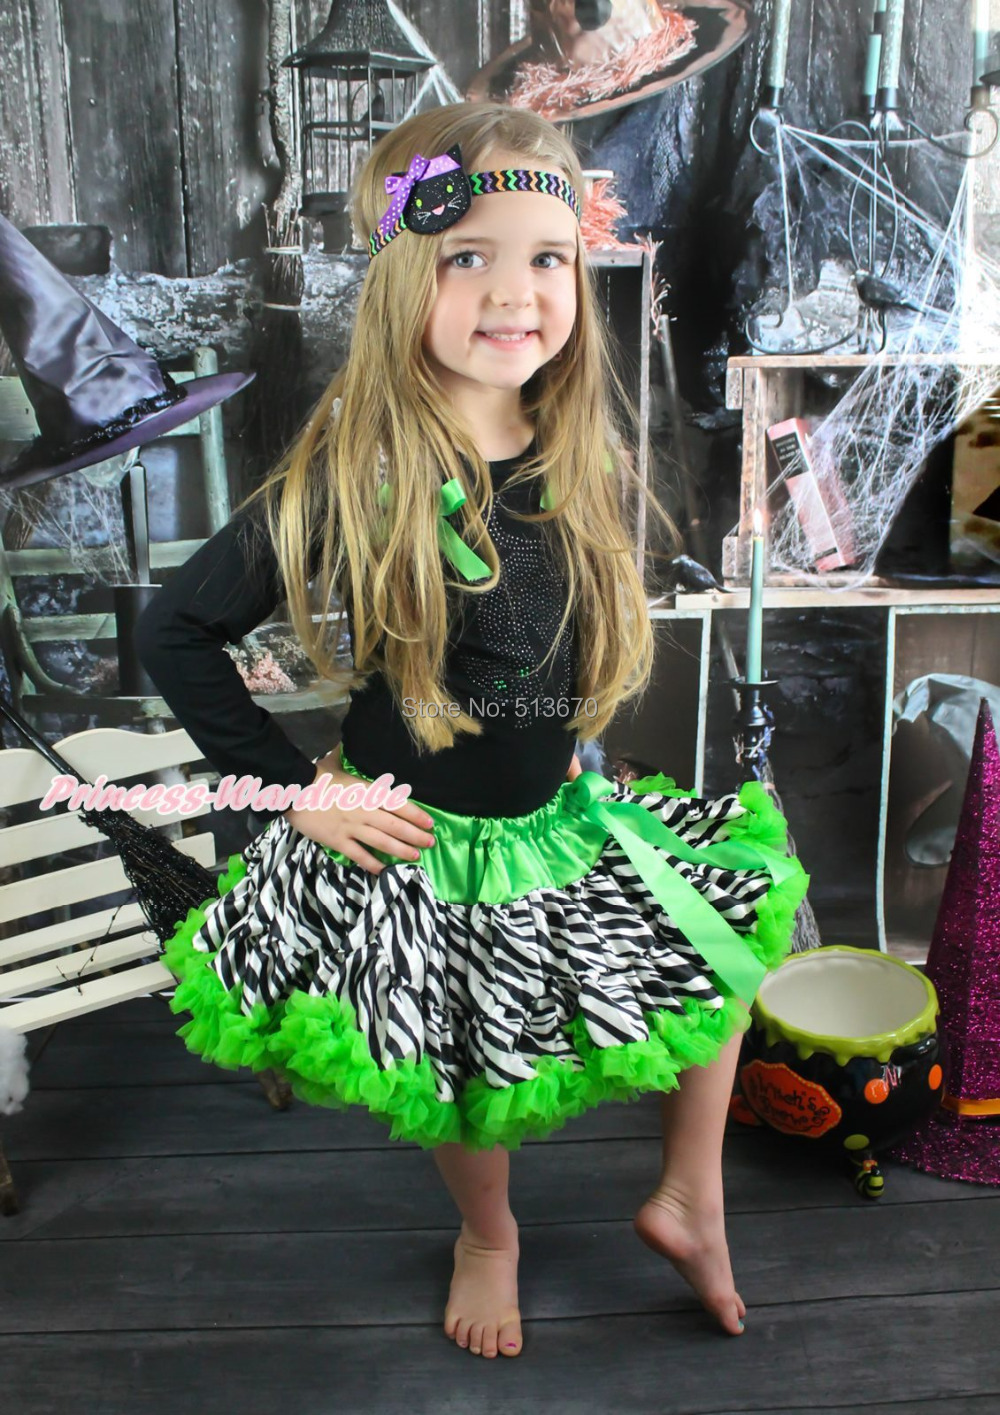 Halloween Rhinestone Cat Black Pettitop Girl Green Zebra Pettiskirt Outfit 1-8Y MAMG1226 2pcs lot adjustable r134a r12 valve core quick remover installer tool high low pressure coupler for air conditioning mayitr